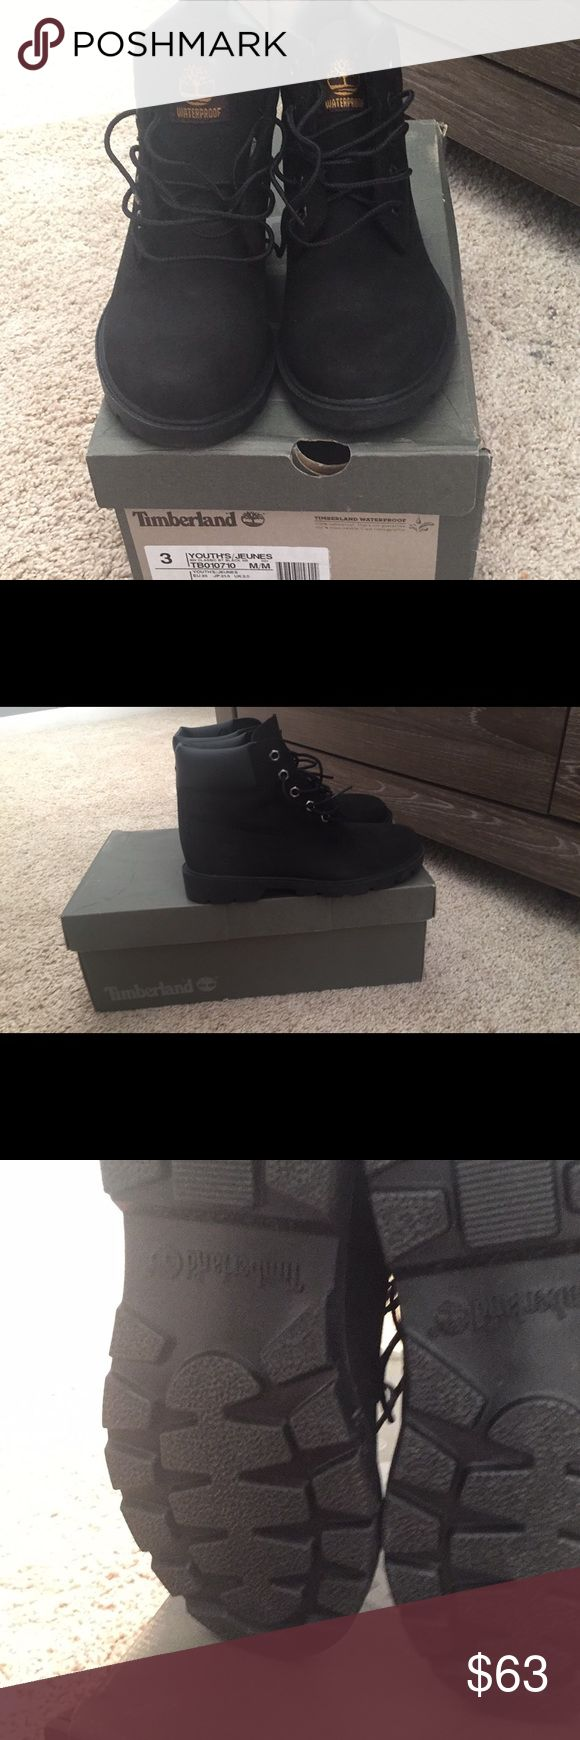 Youth timberlands never worn Black size 3 new Timberland Shoes Boots